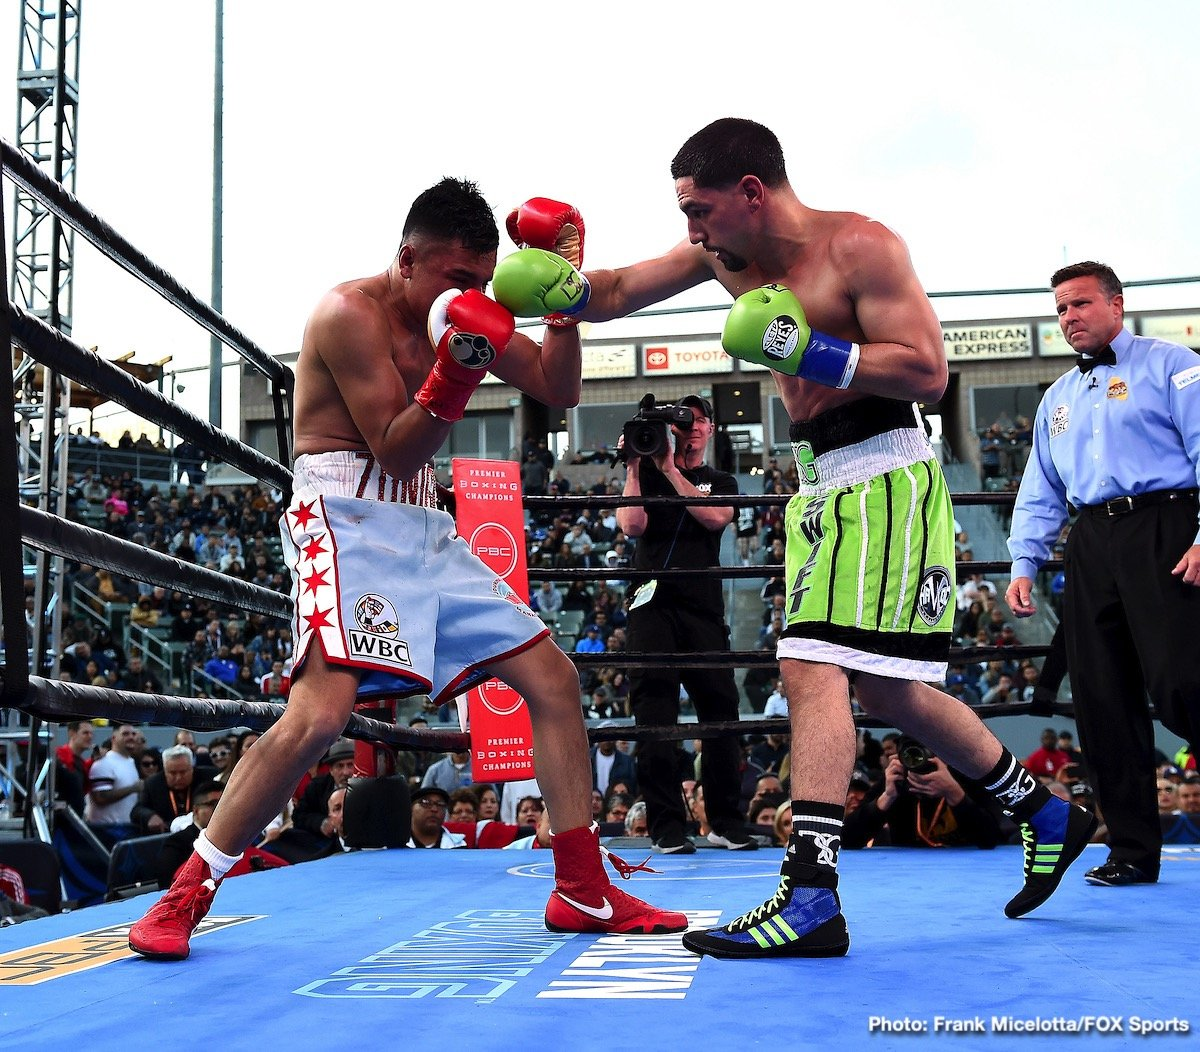 Danny Garcia - In a spectacular performance former two division belt holder Danny Garcia (35-2, 21 KOs) bludgeoned the game but limited Adrian Granados (20-7-2, 14 KOs) in scoring a seventh round TKO victory on Saturday night in a fight that was shown on PBC on Fox at the Dignity Health Sports Park in Carson, California.